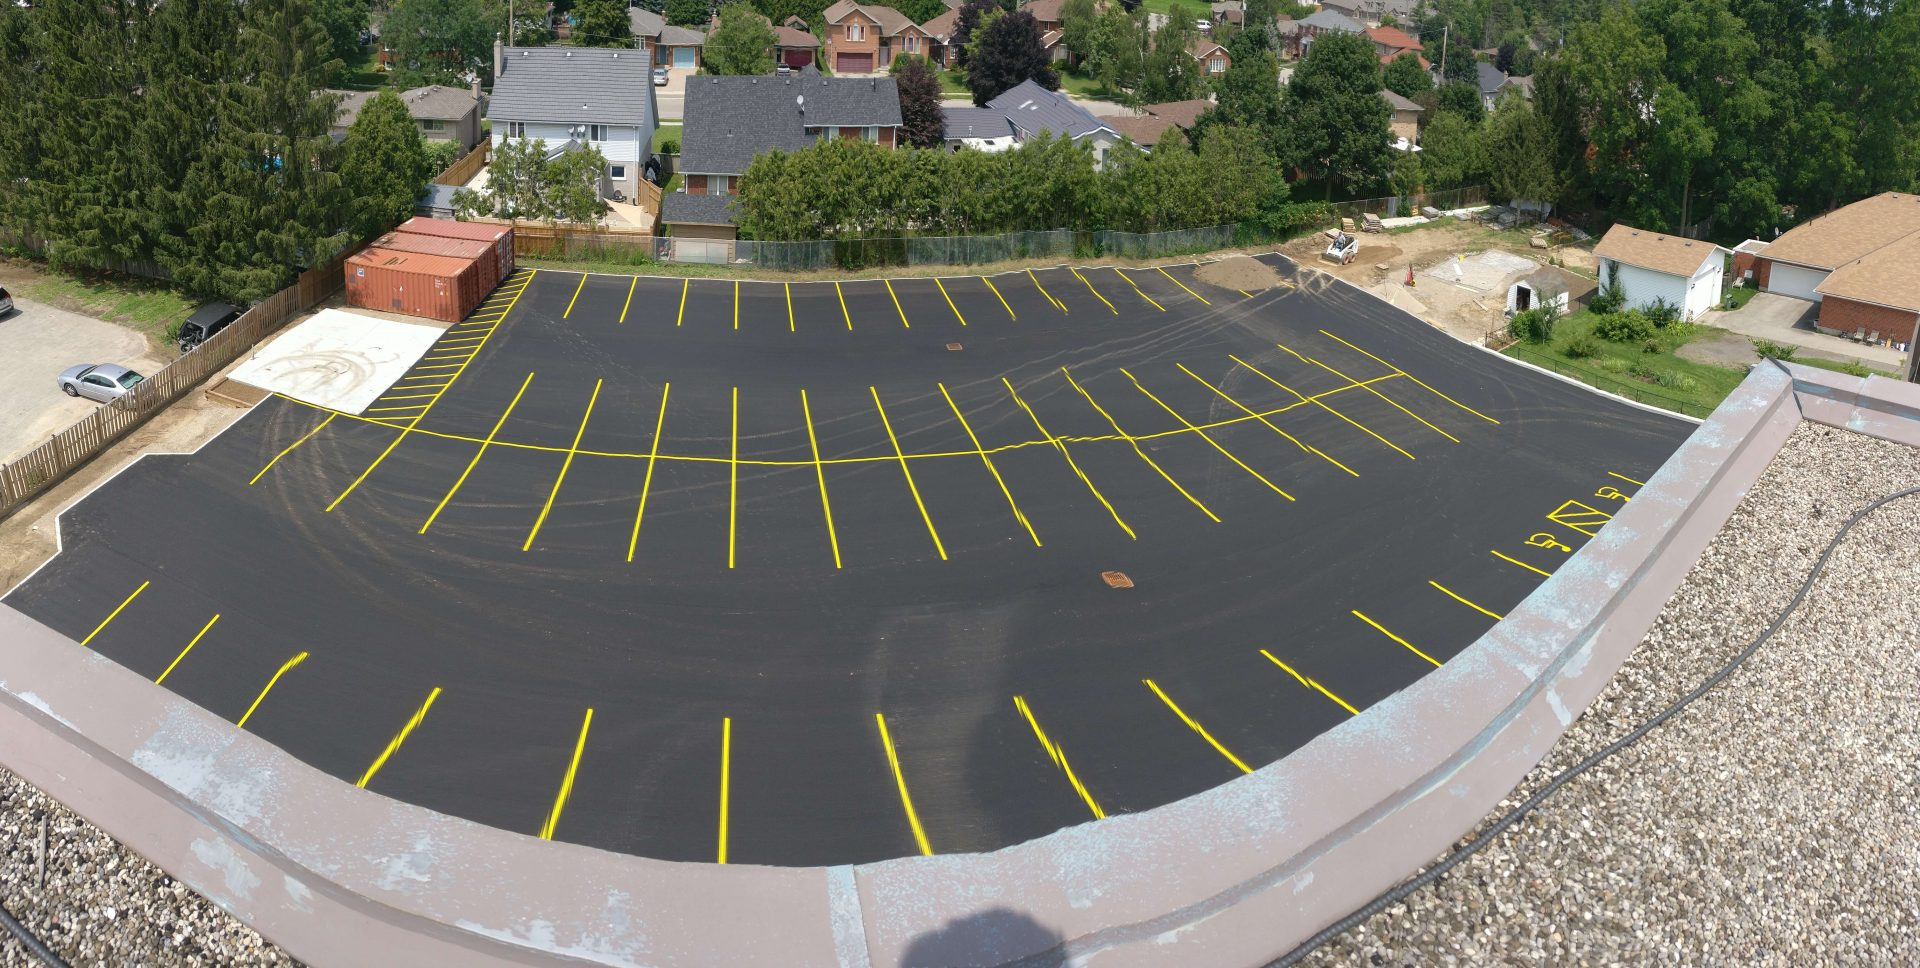 Completed parking lot by Paris Construction